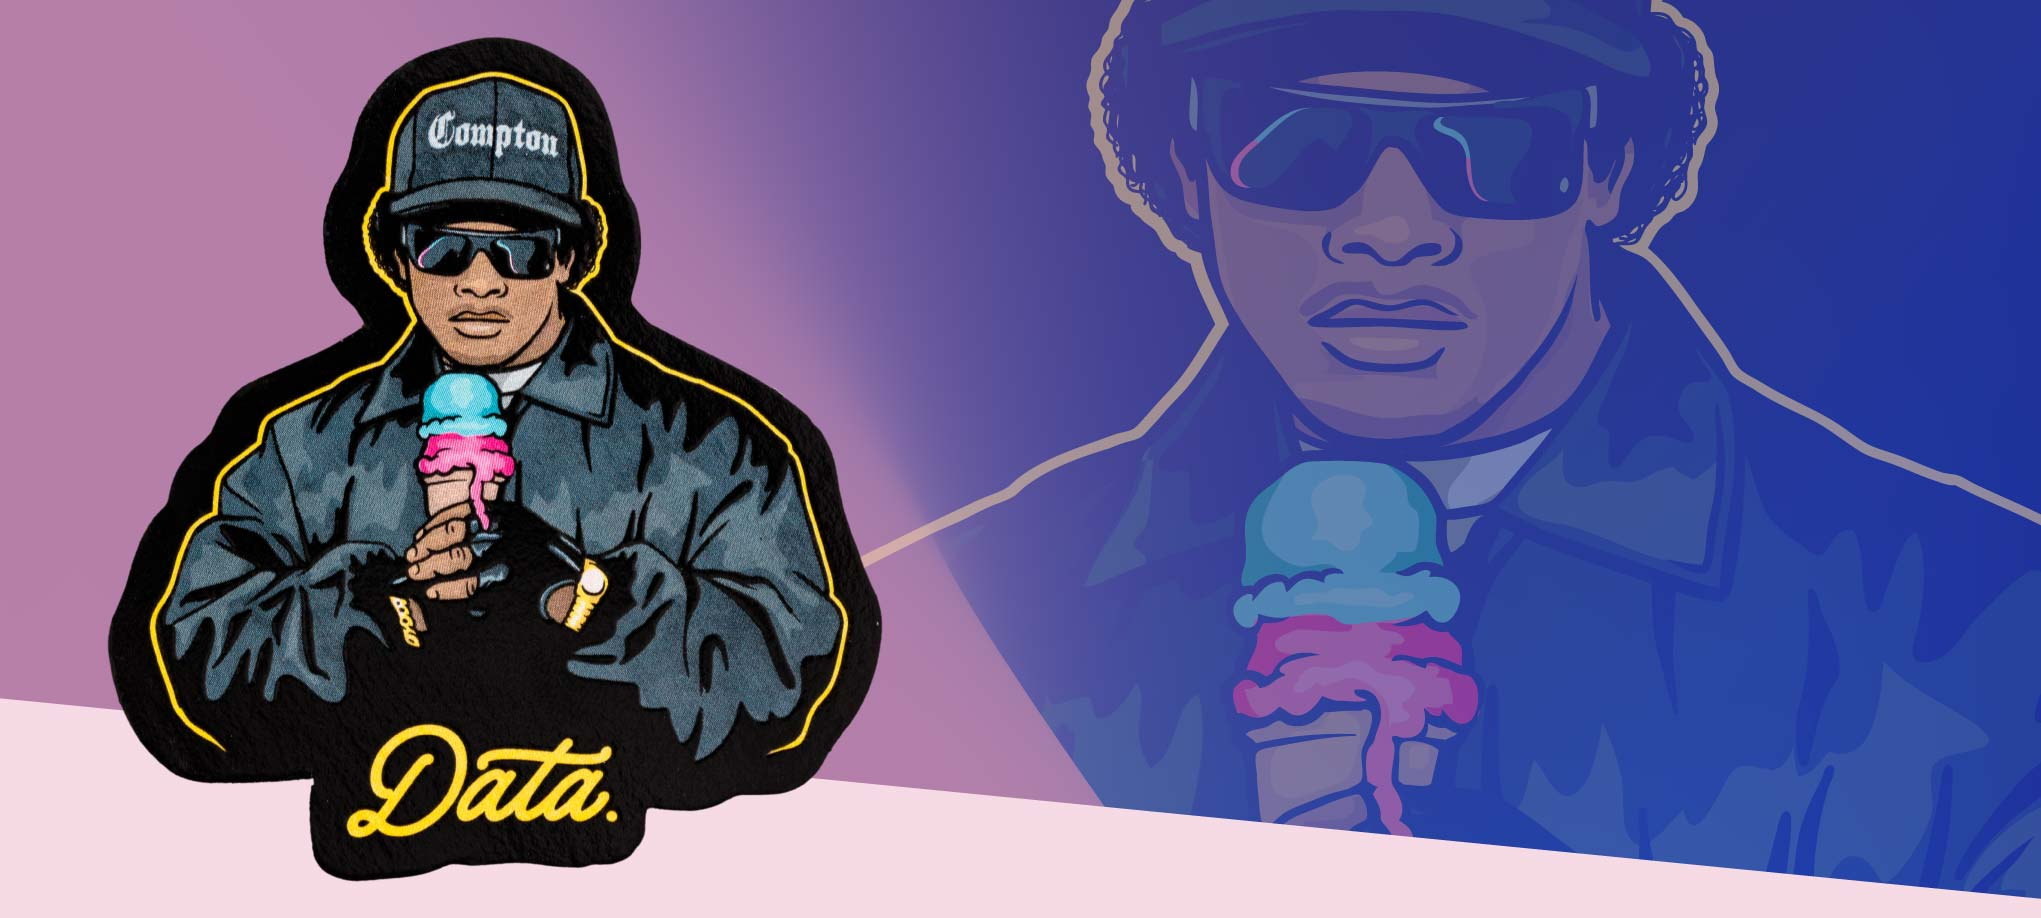 """EAZY ICE CREAM"" STICKER Stickers Jake Beeson X Data 